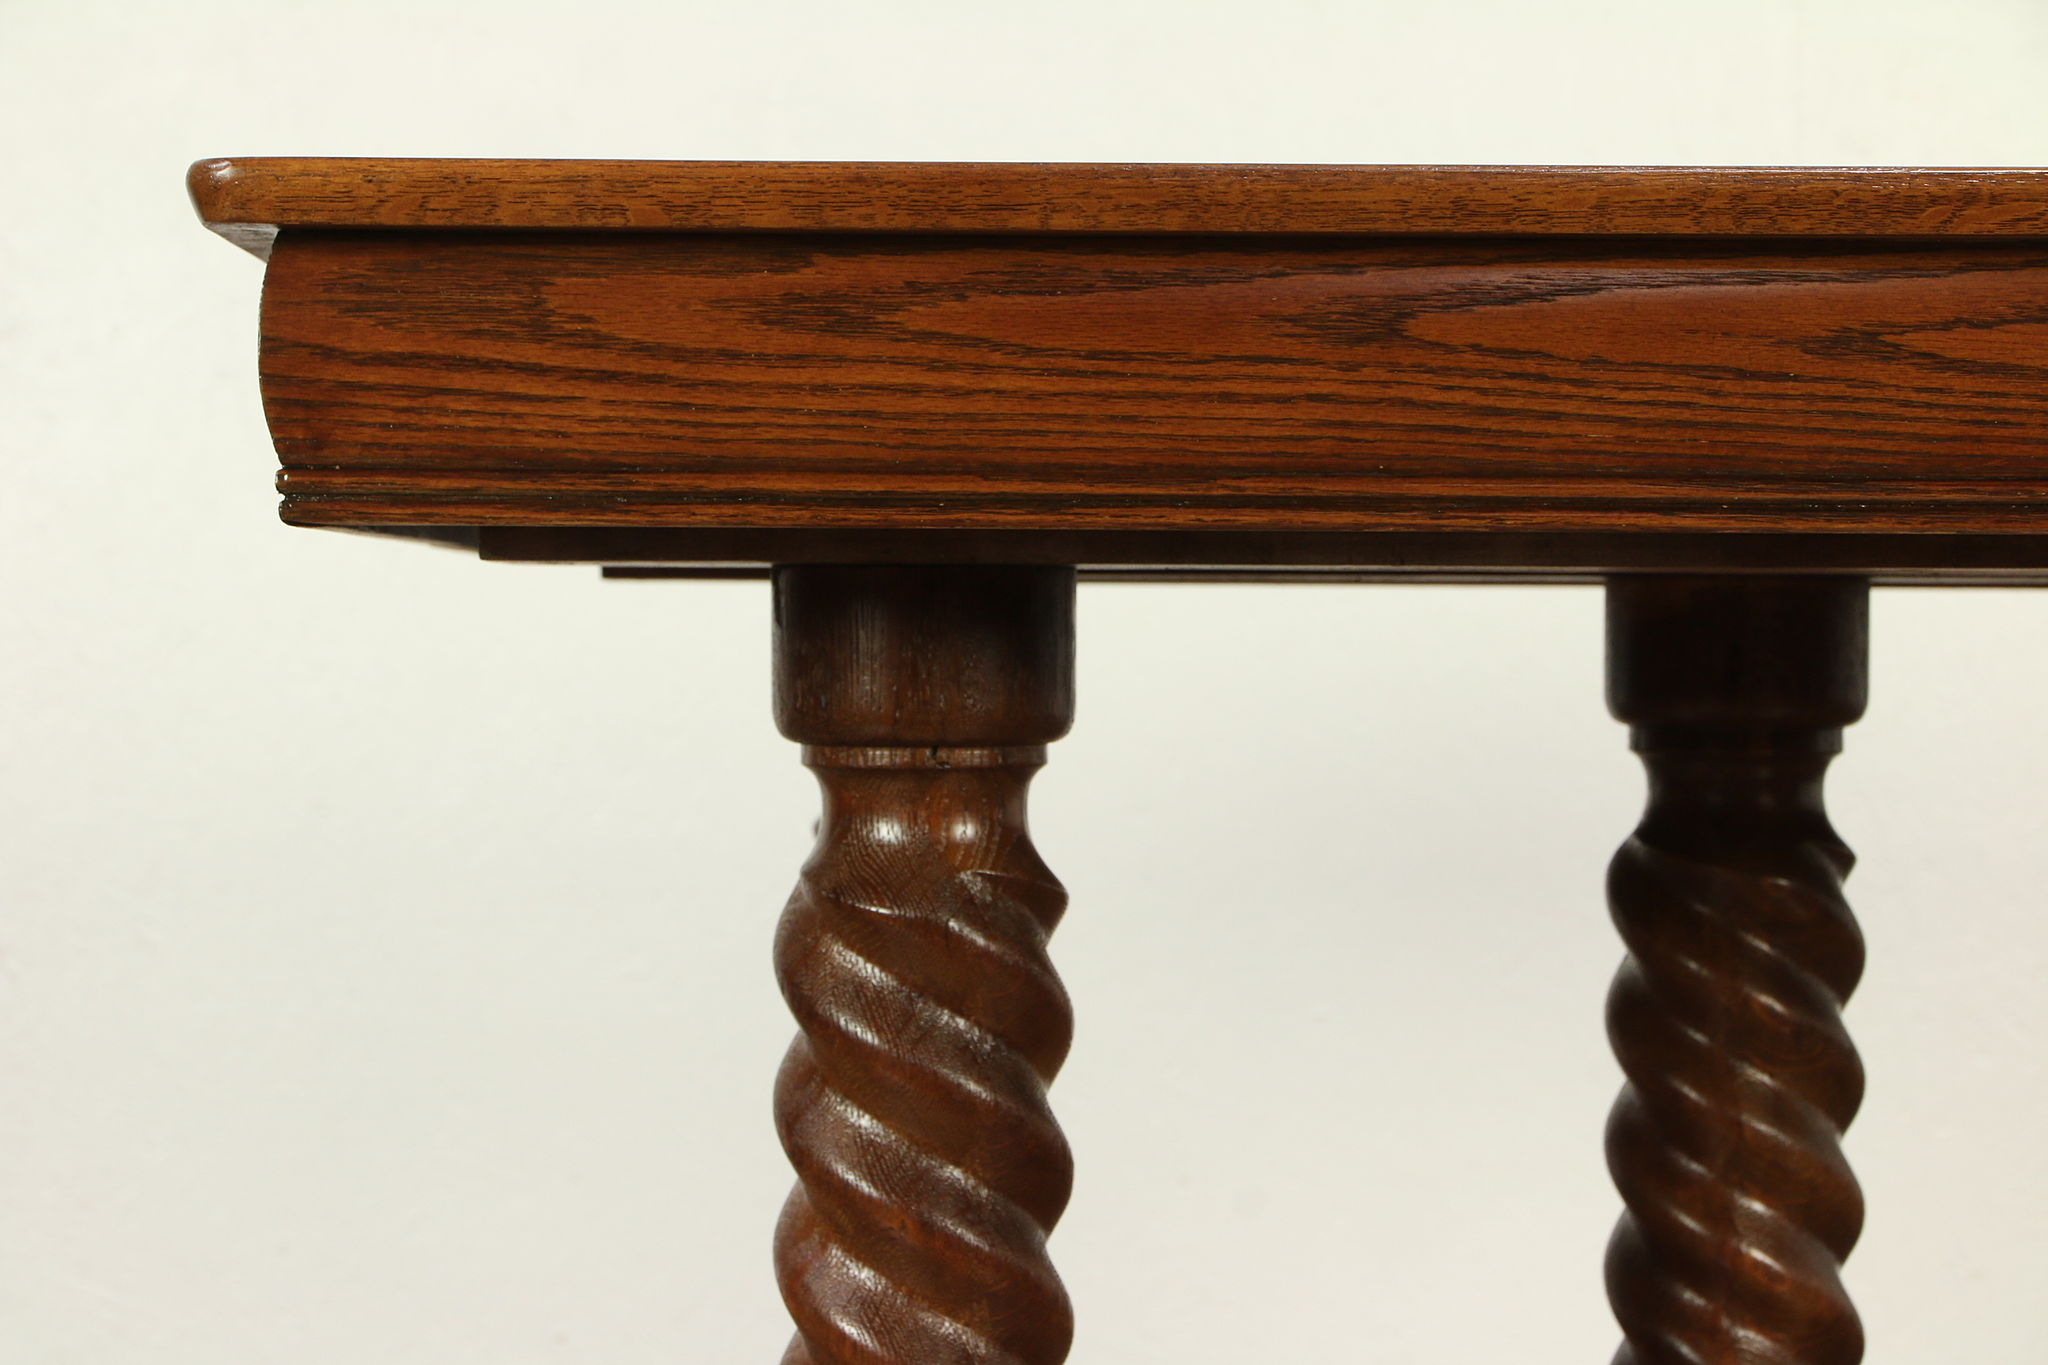 Oak Antique Victorian Square Dining Table 2 Leaves Spiral Legs